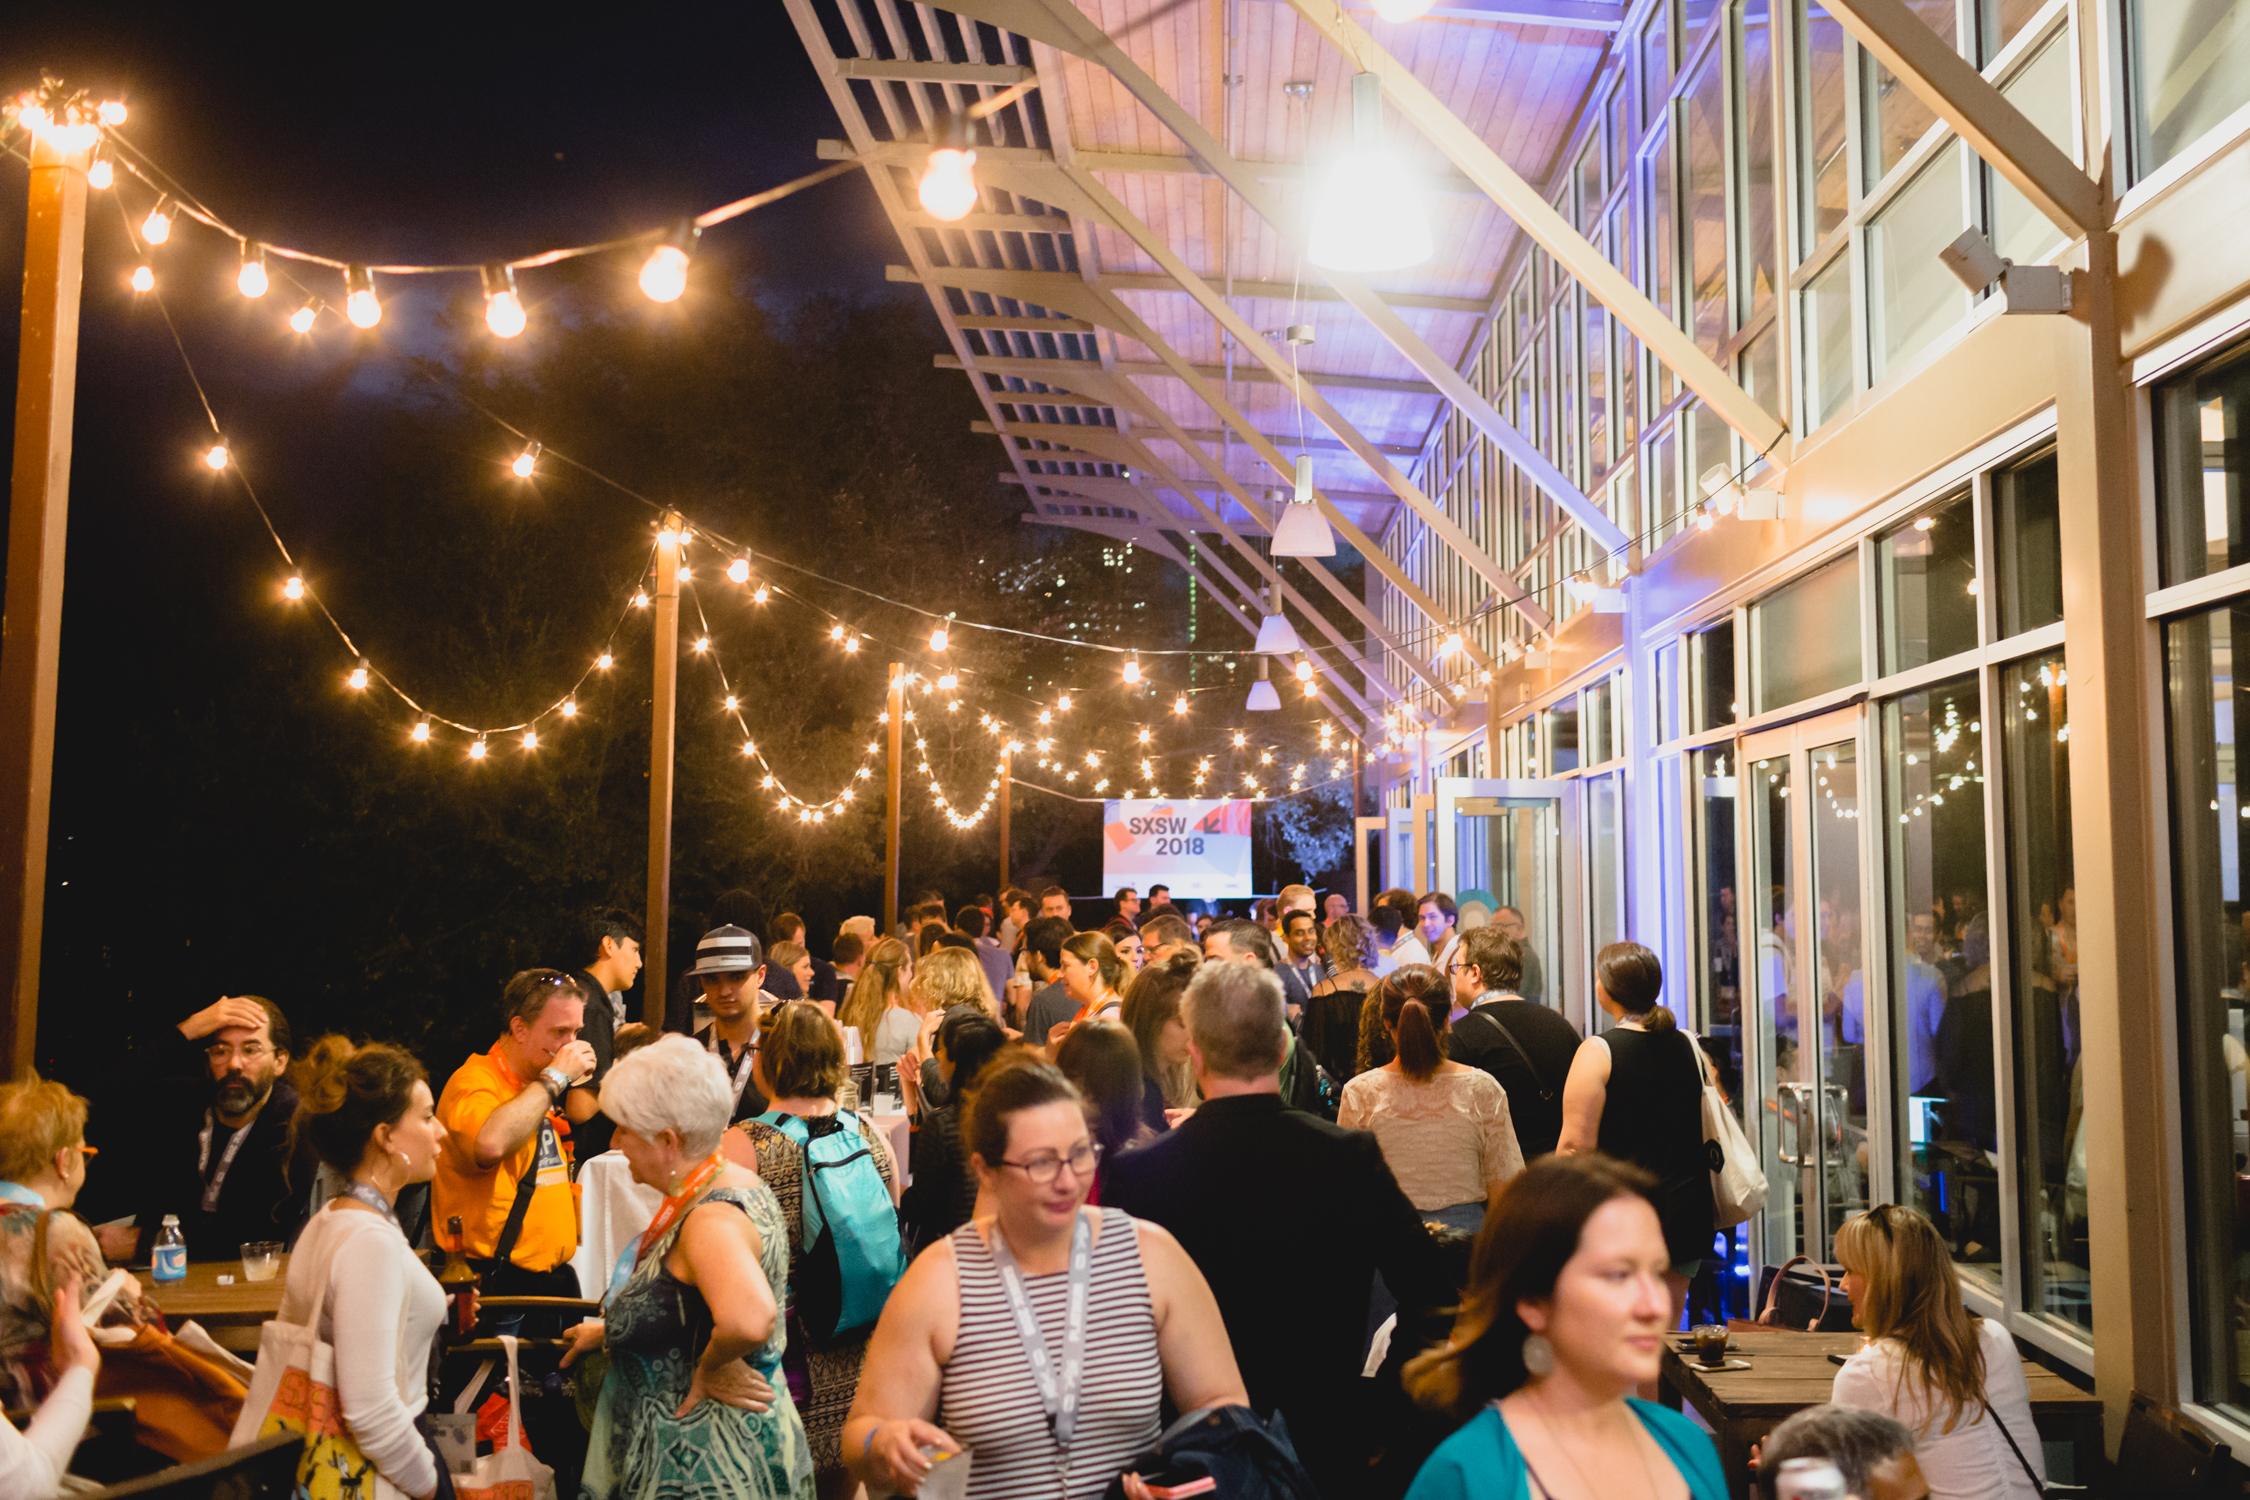 A round-up of activities at the Hub Culture Austin Pavilion during SXSW